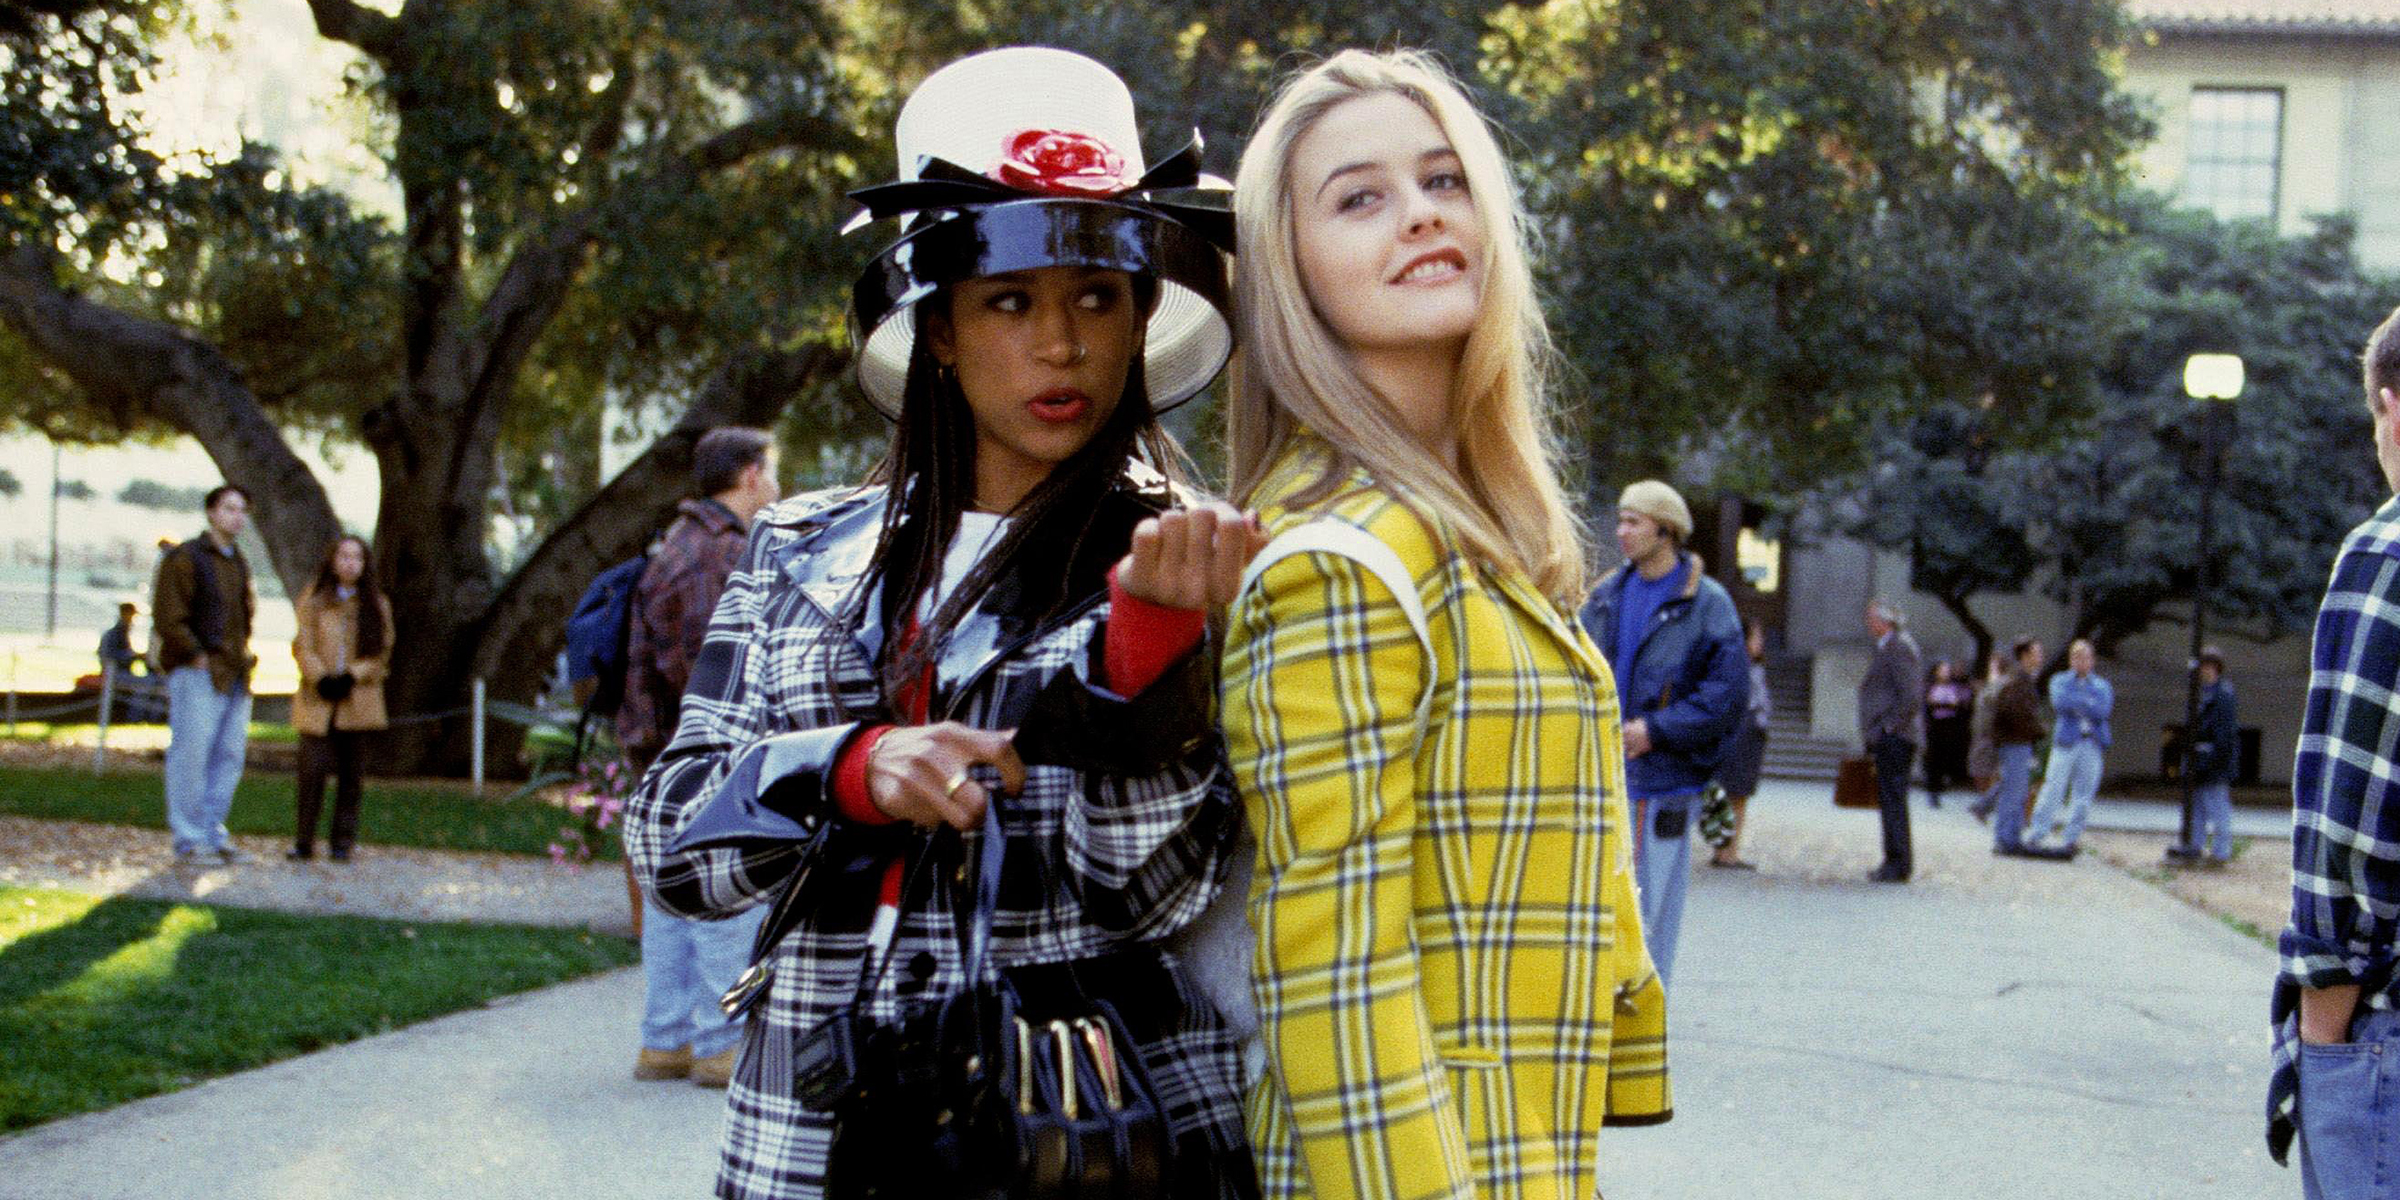 A 'Clueless' reboot is in the works! Here are the details